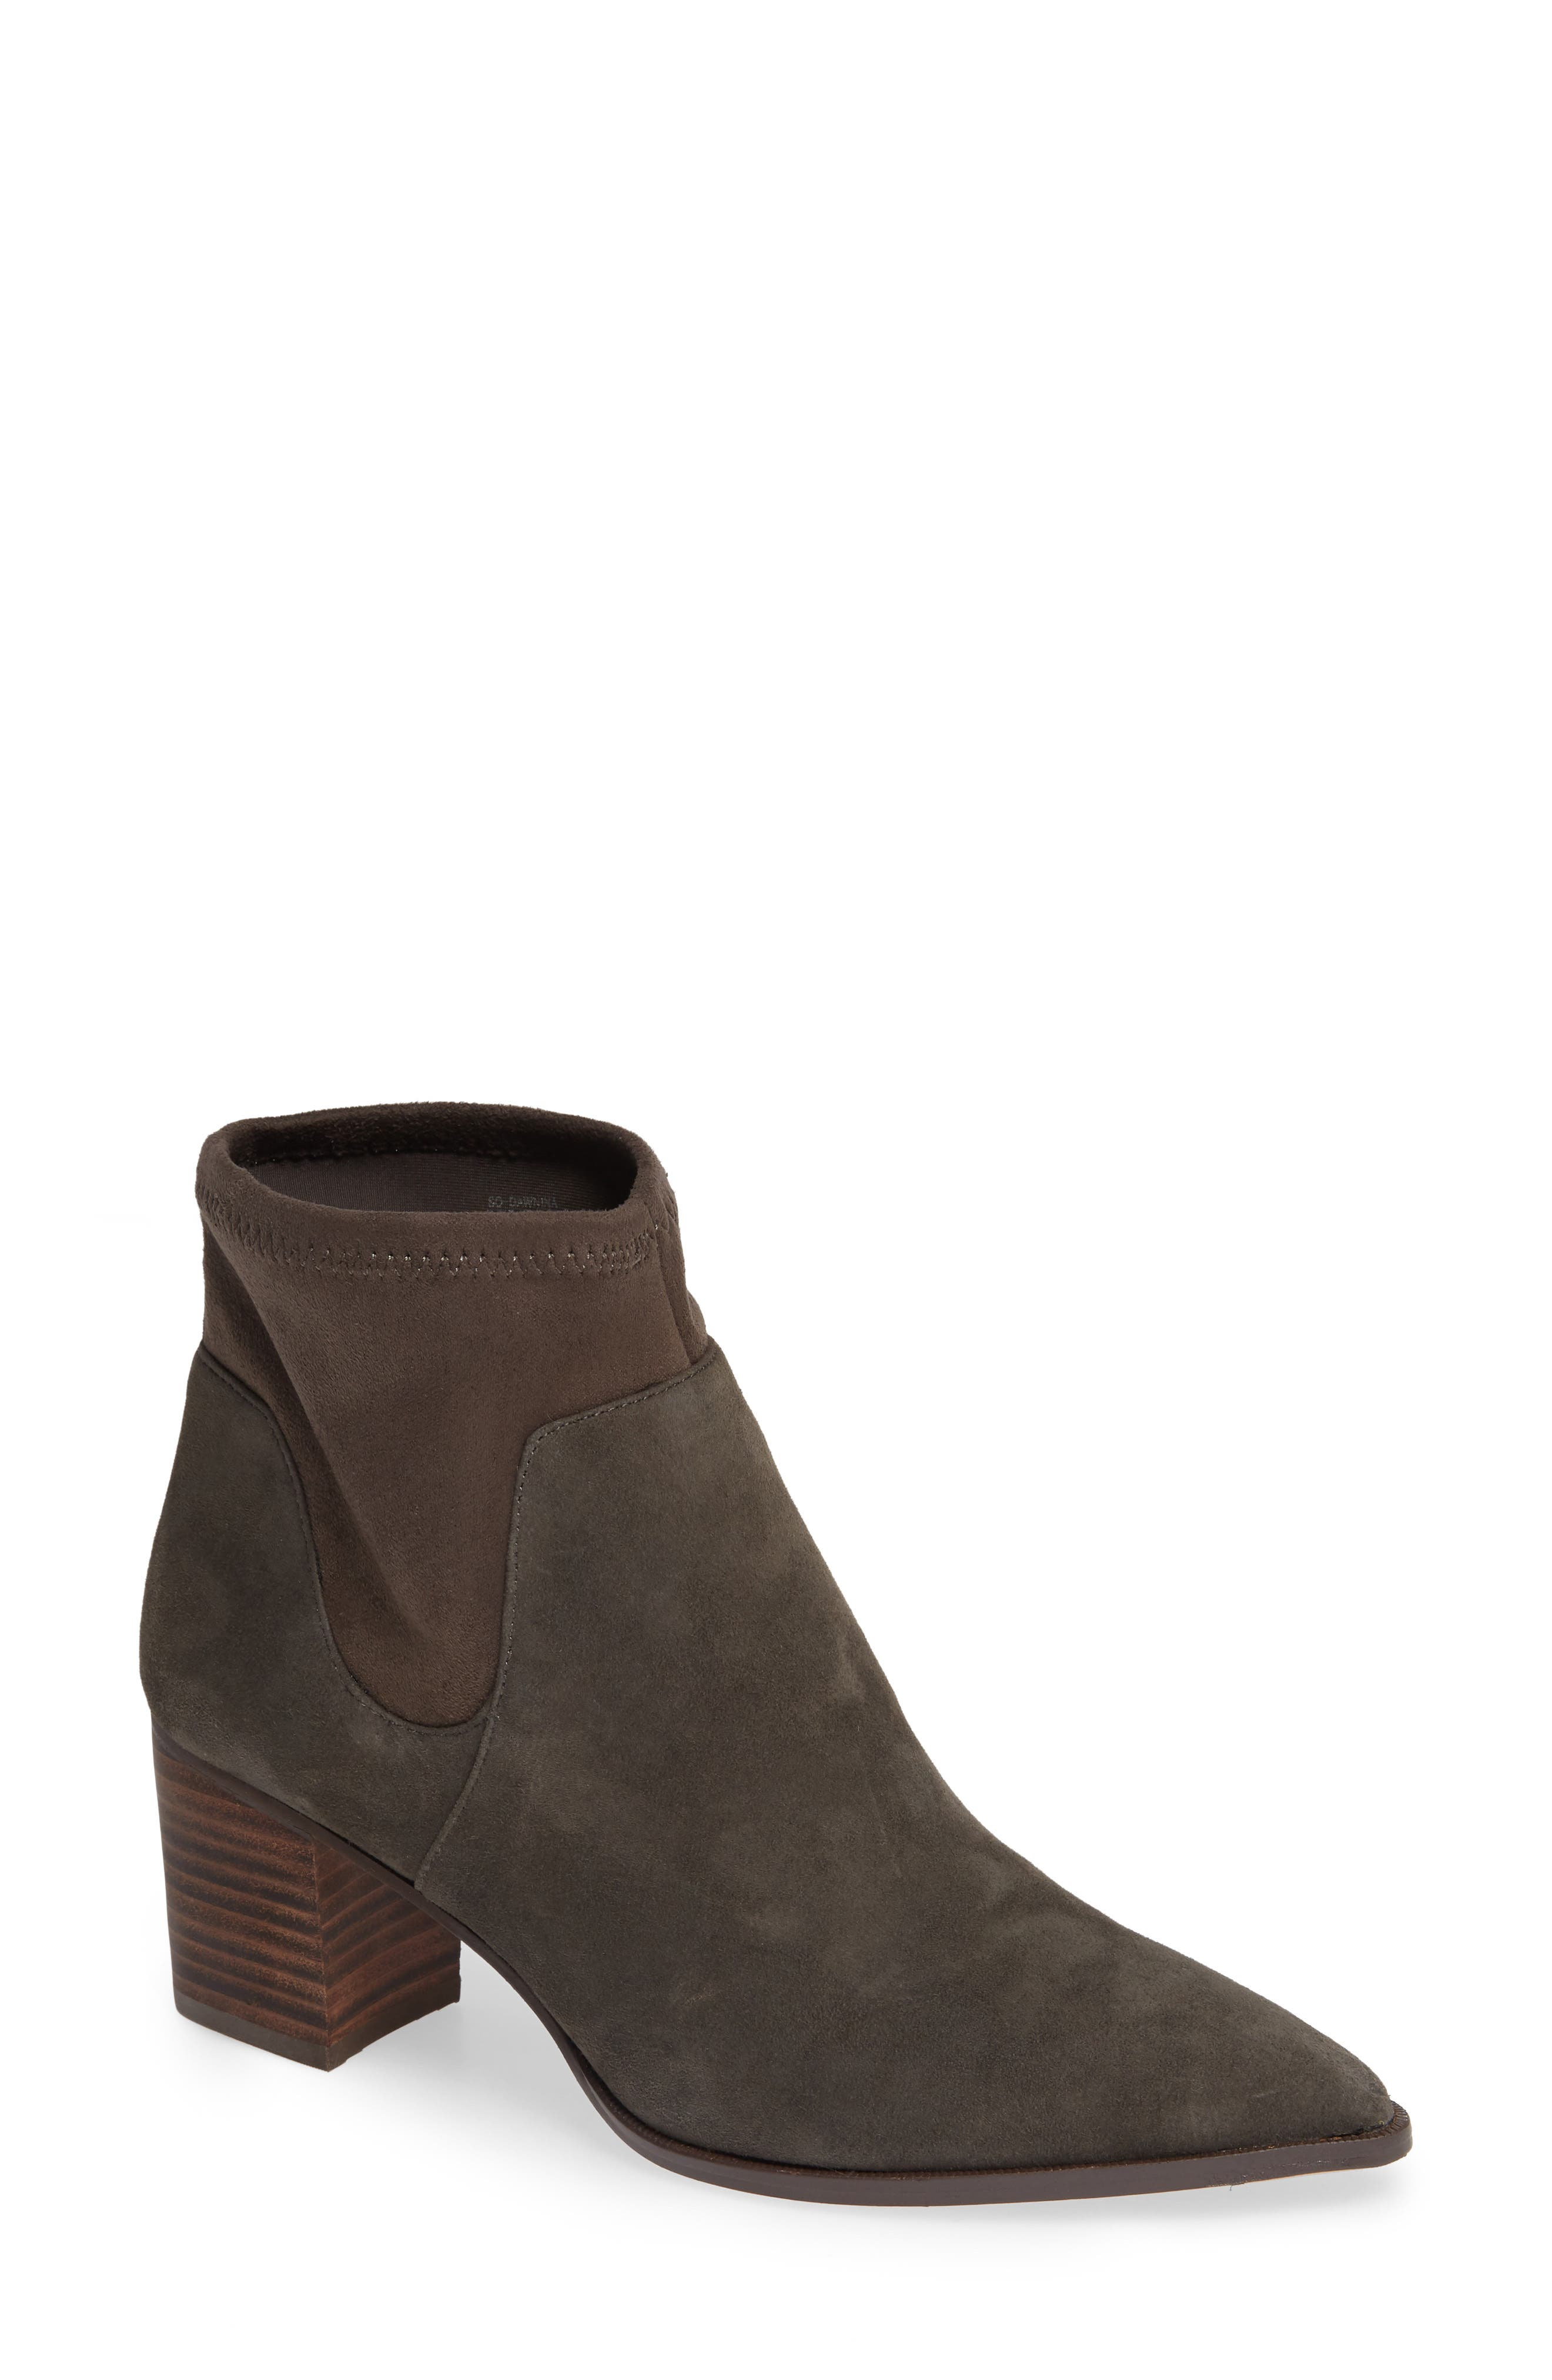 Dawnina Bootie,                         Main,                         color, IRON SUEDE